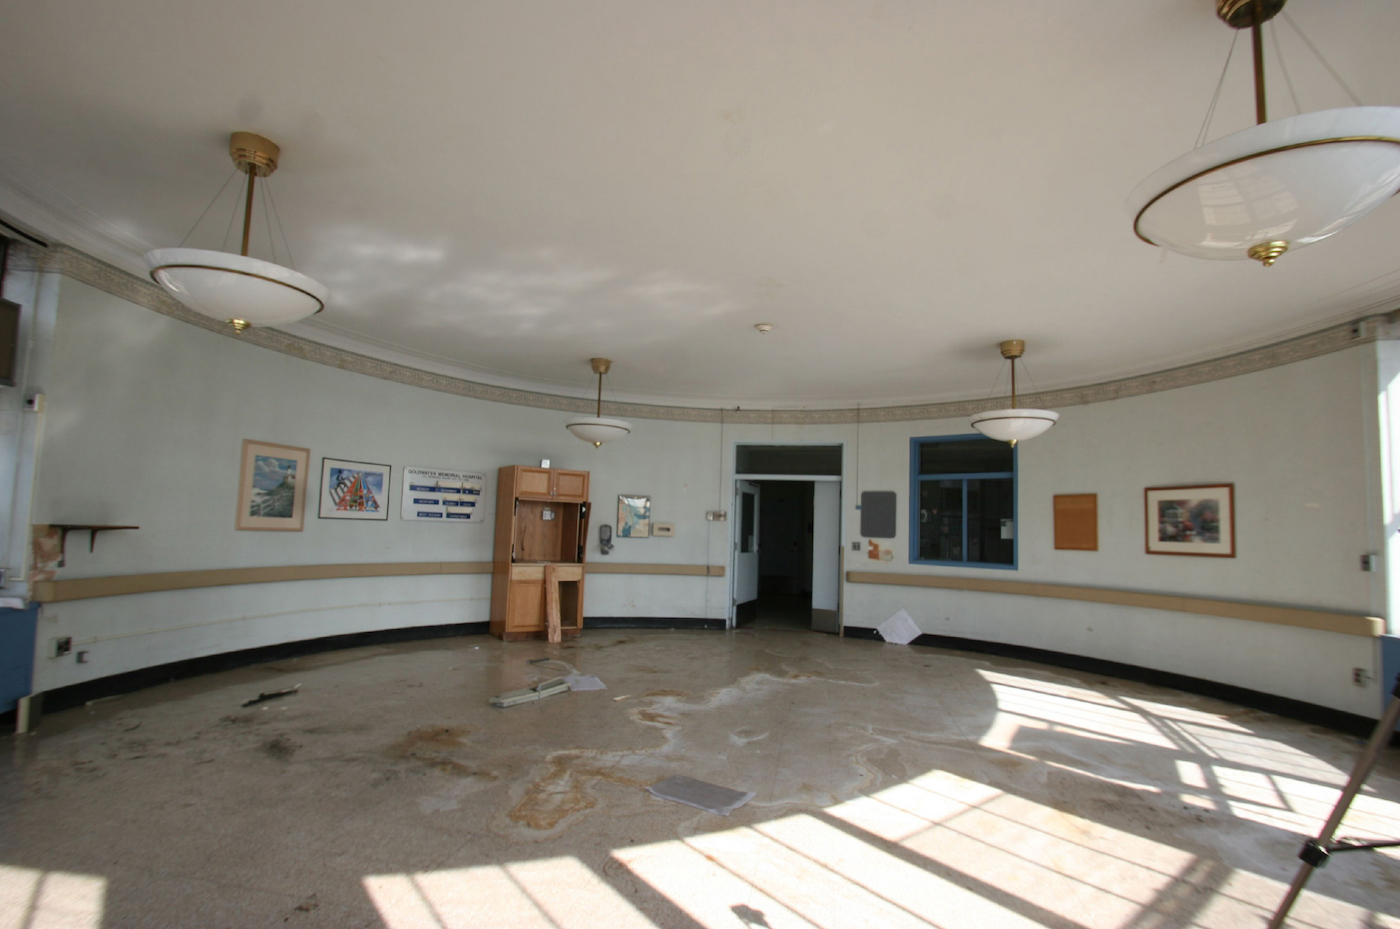 Revealed: WPA Murals from Roosevelt Island